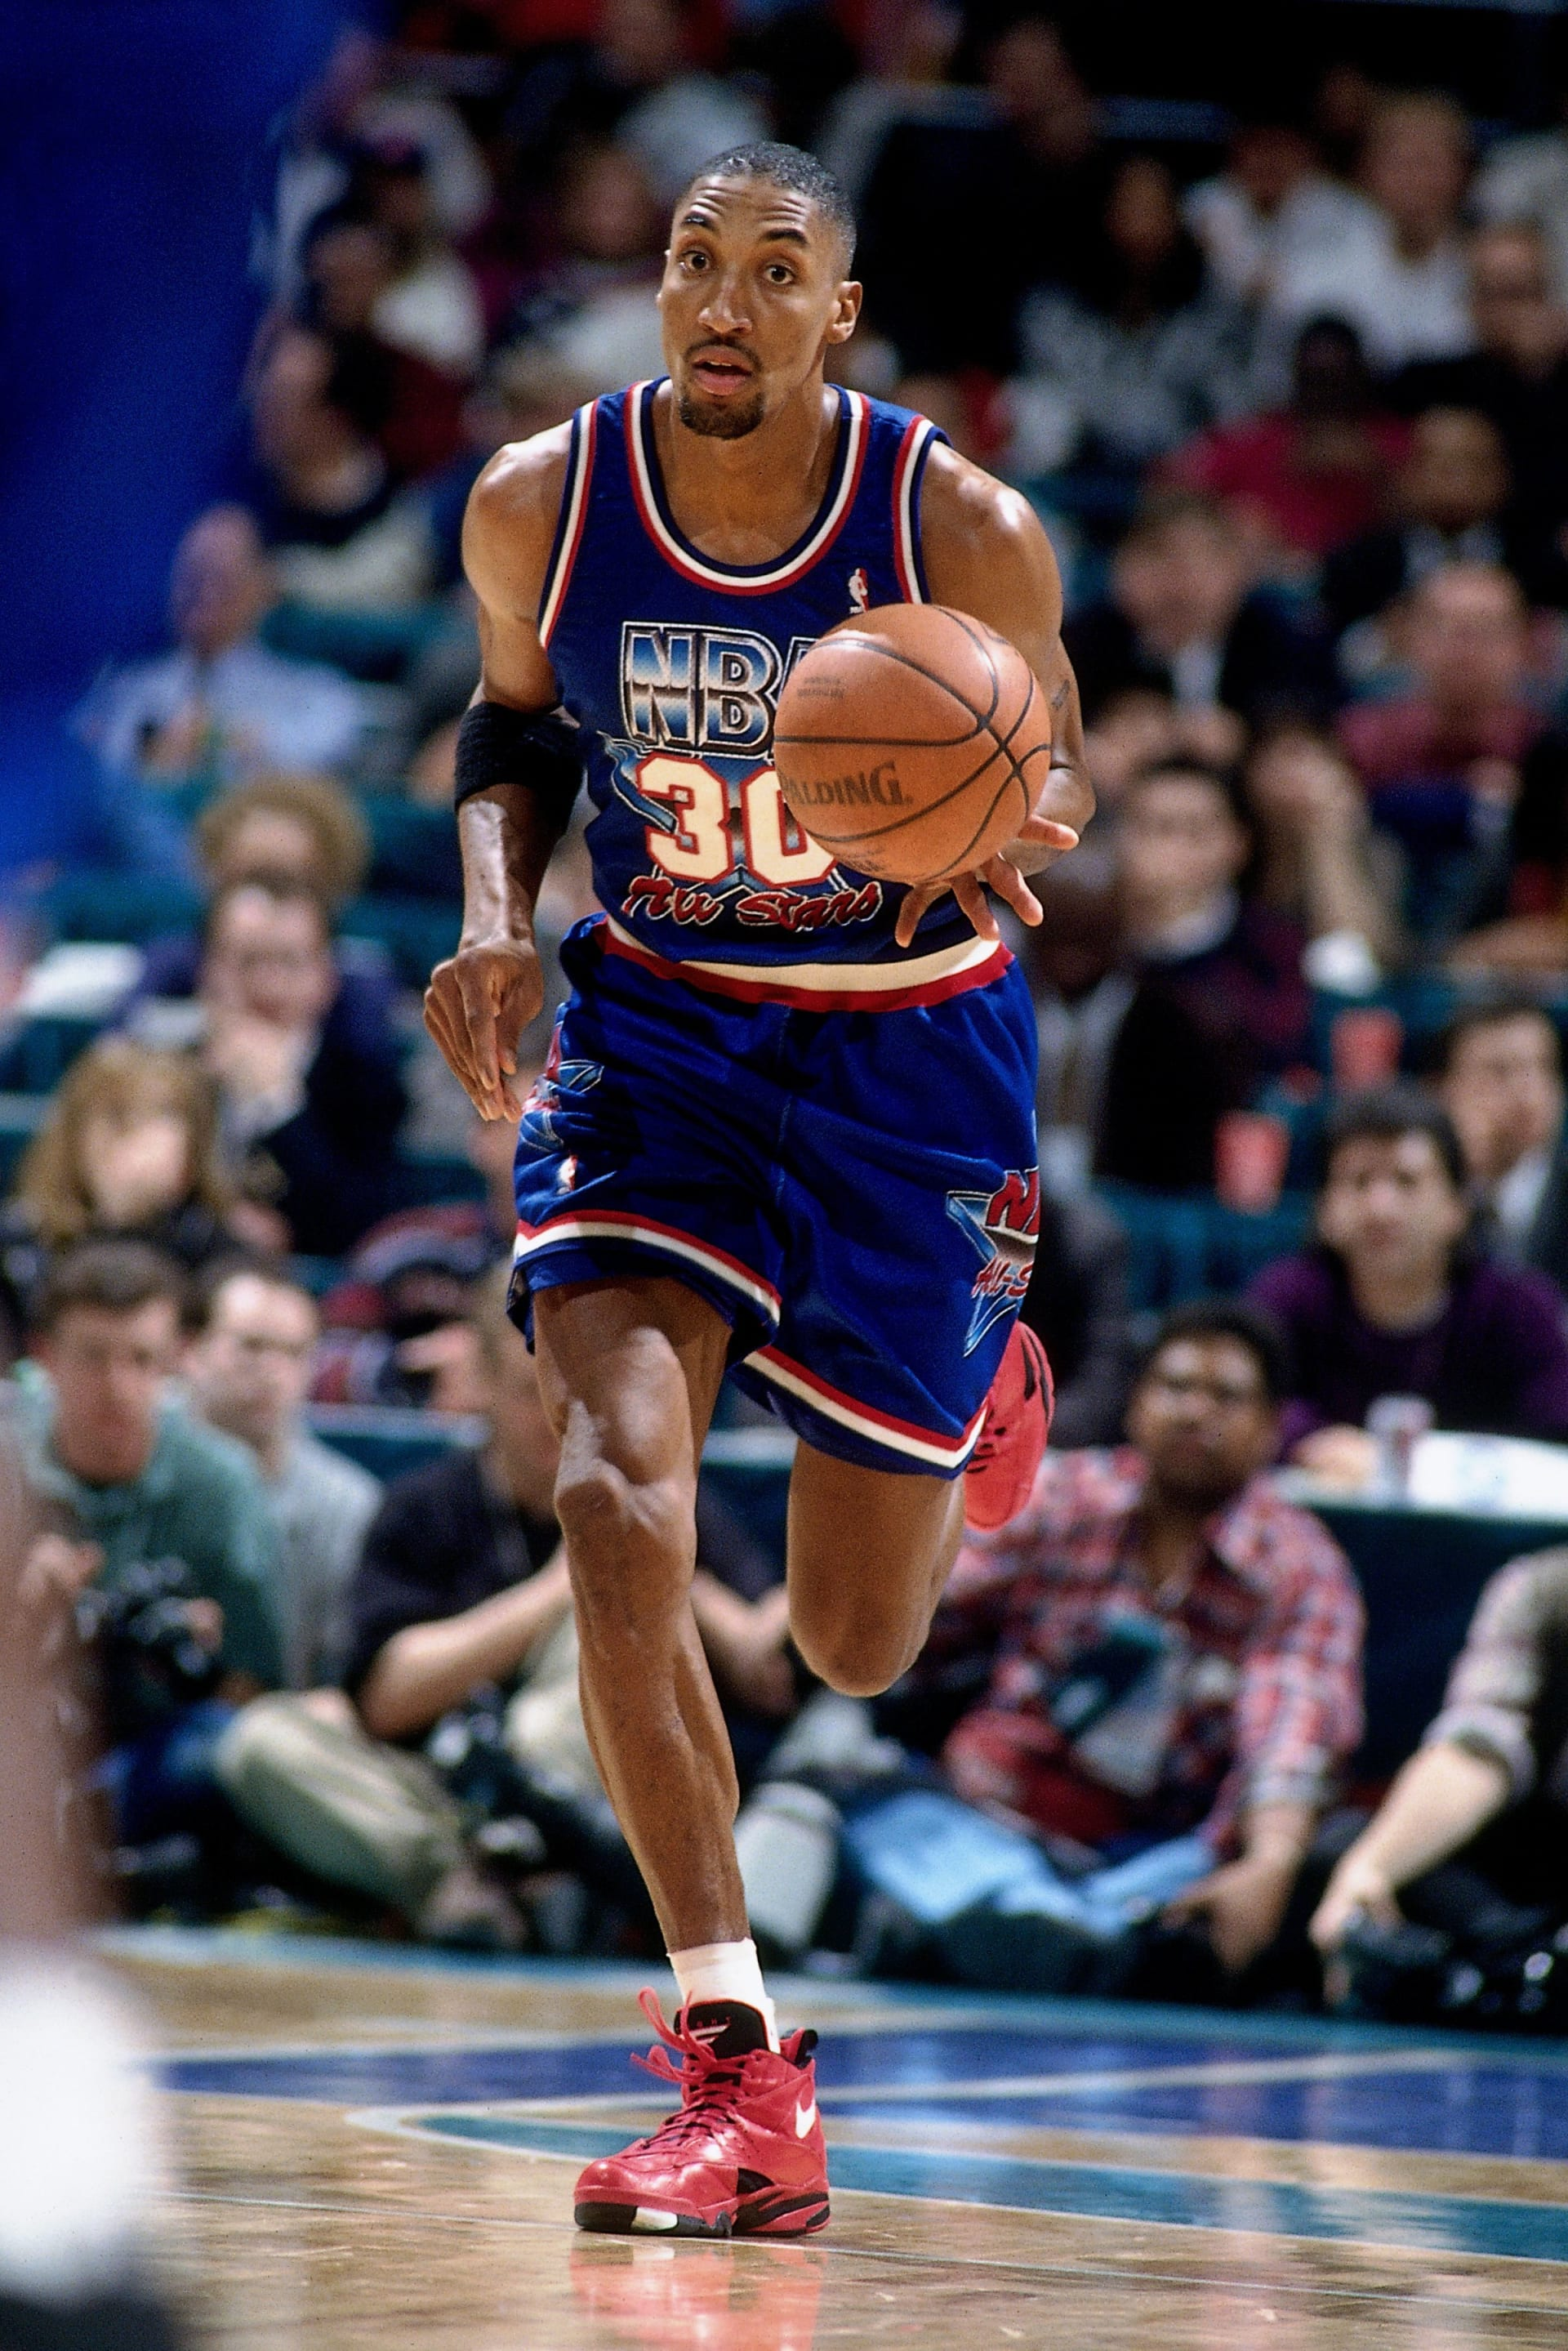 504ba4691a2 6 Times Sneakers Upstaged the NBA All-Star Game